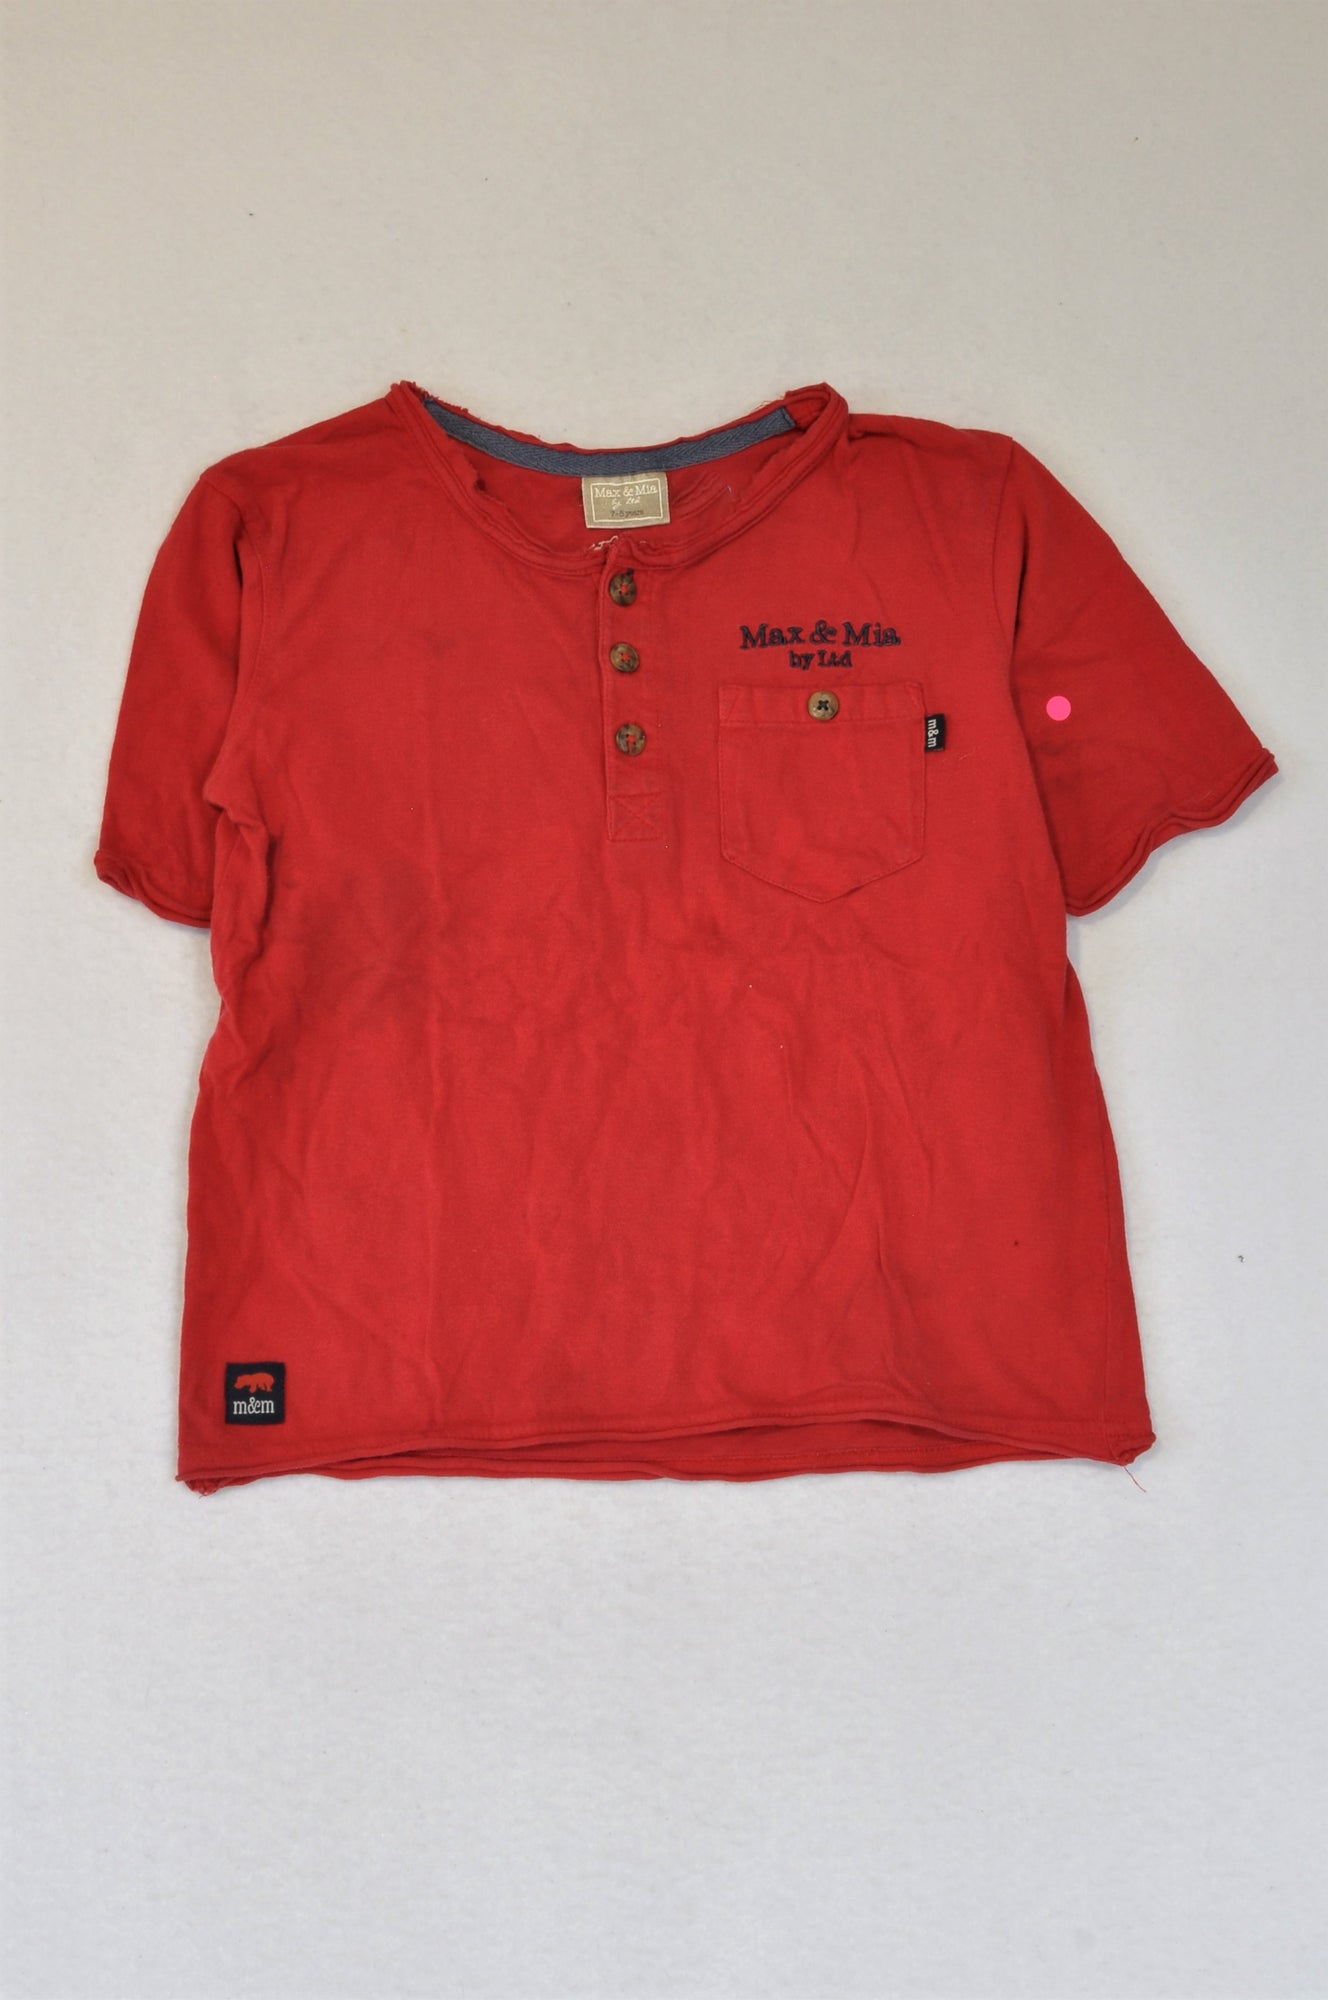 Max & Mia Red Henley T-shirt Boys 7-8 years